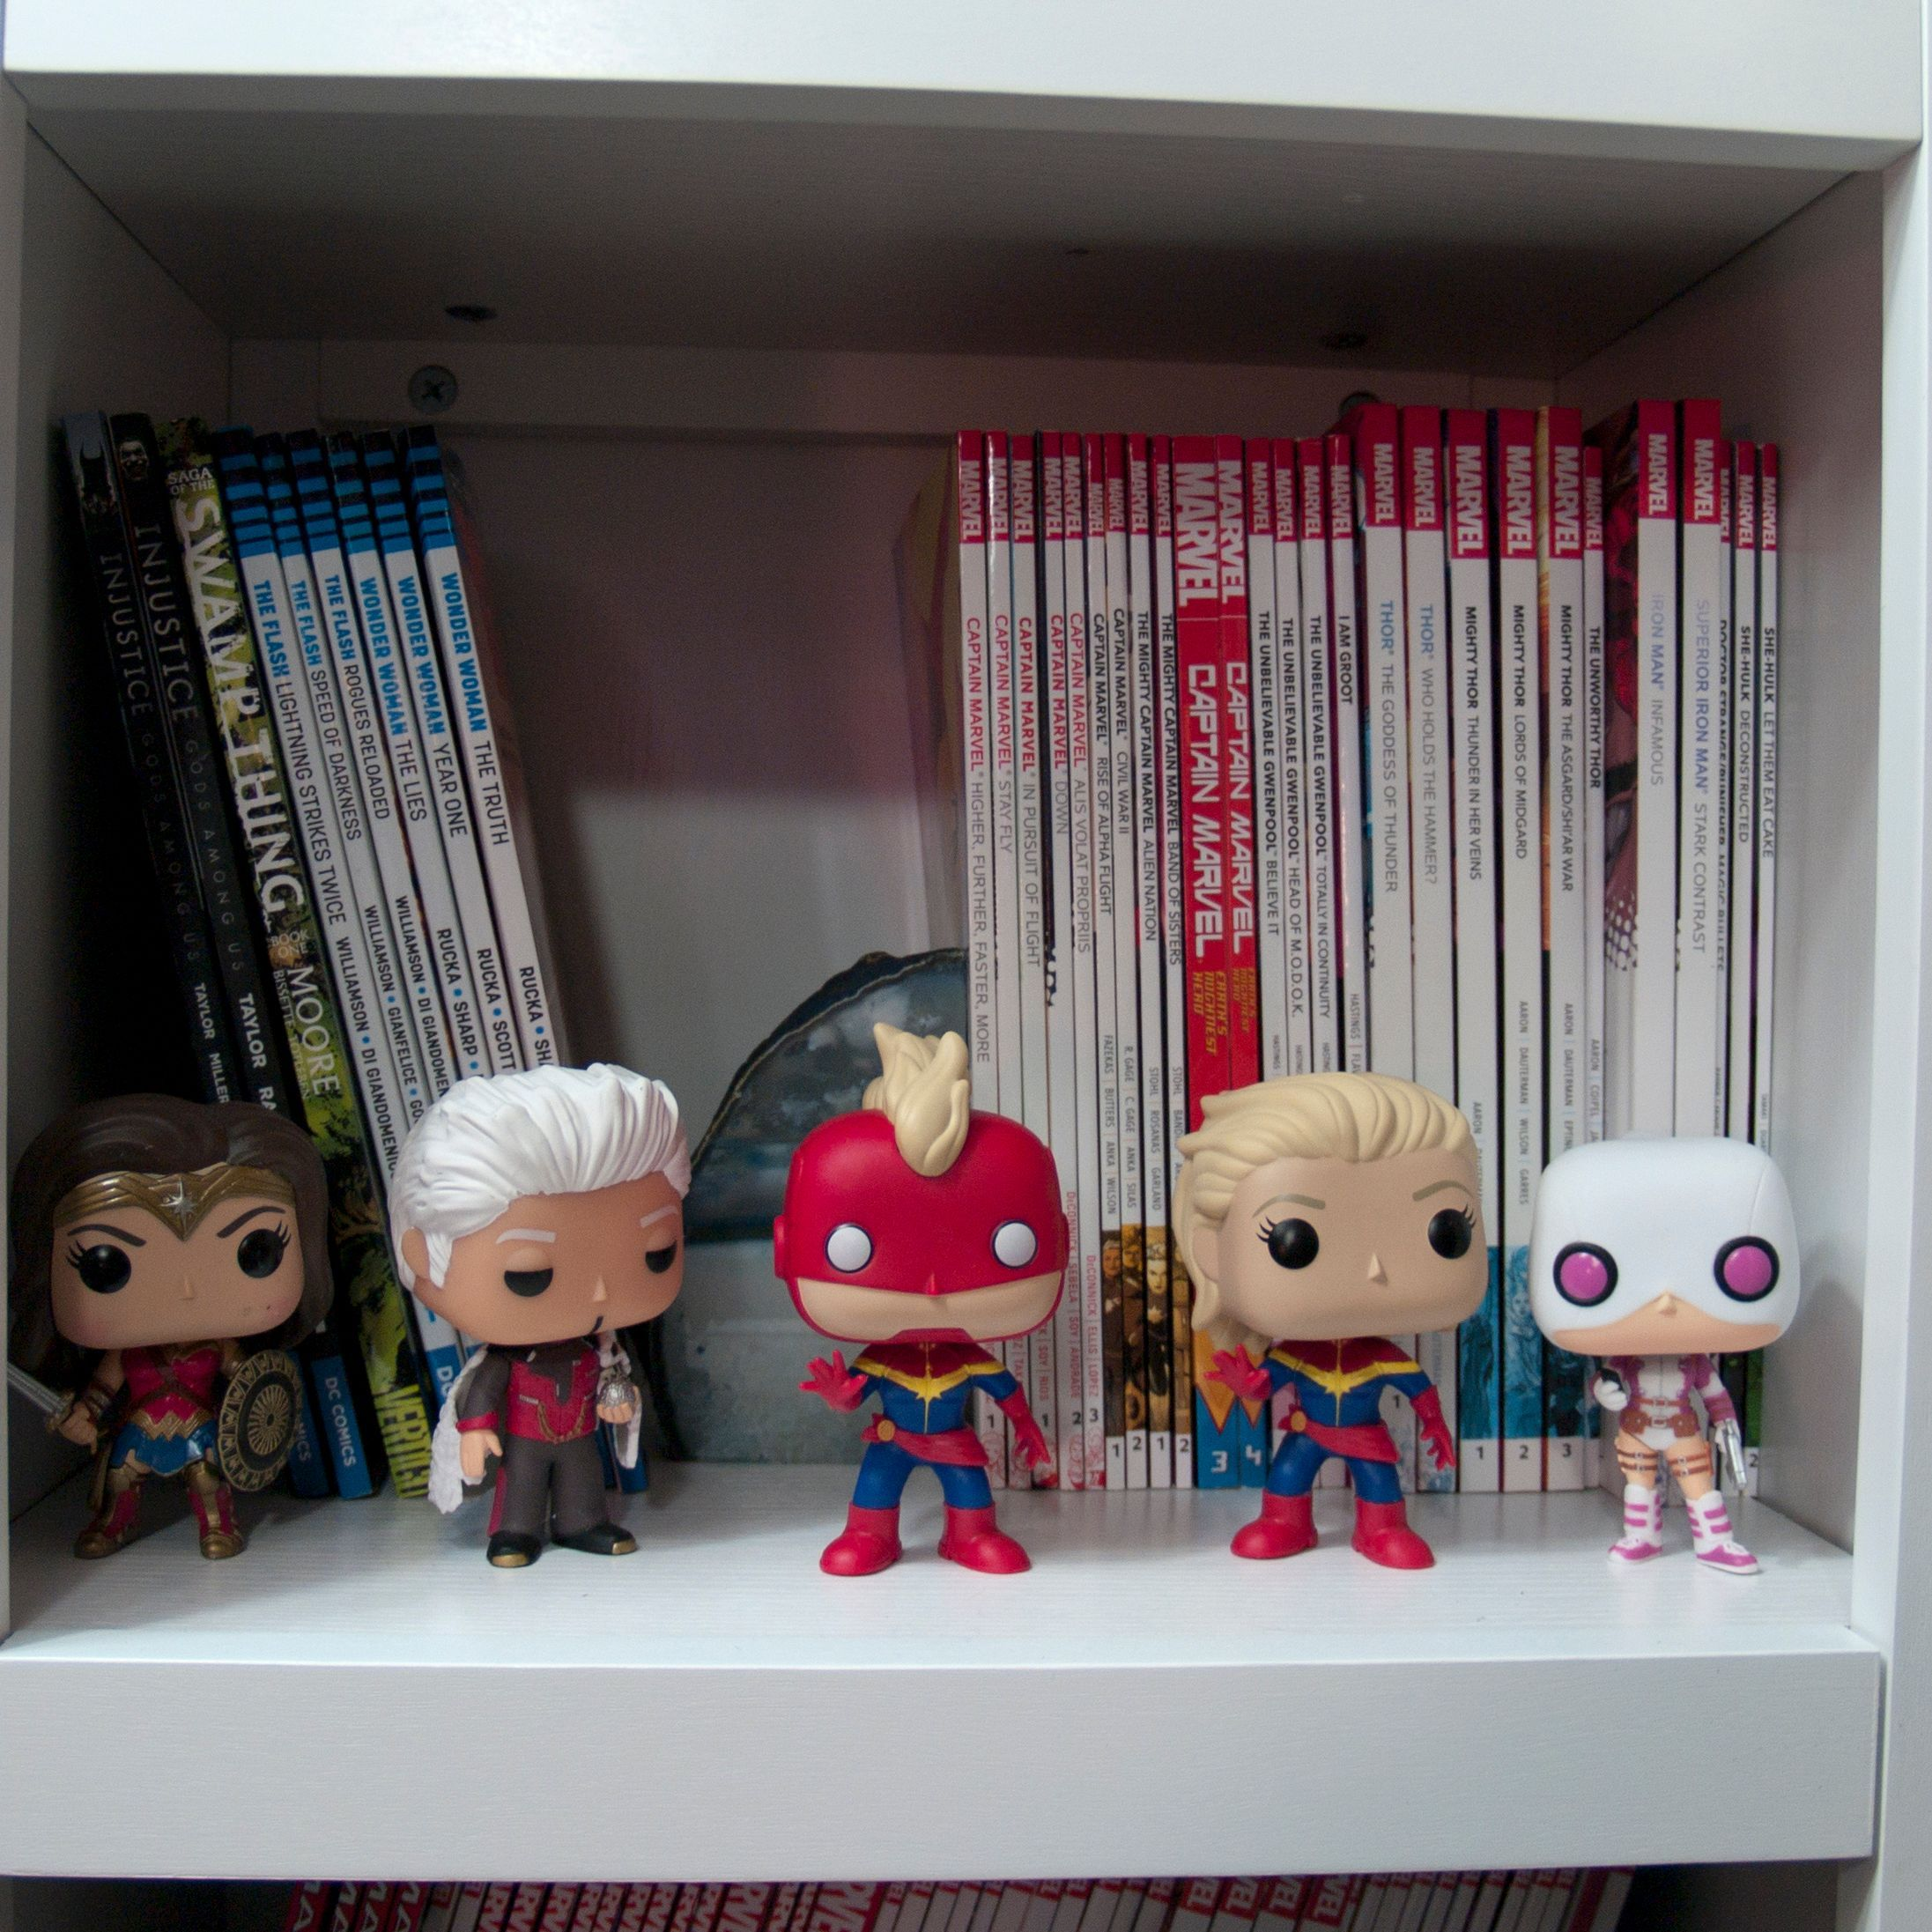 Another Peek At My Comic Book Shelf In Case You Were